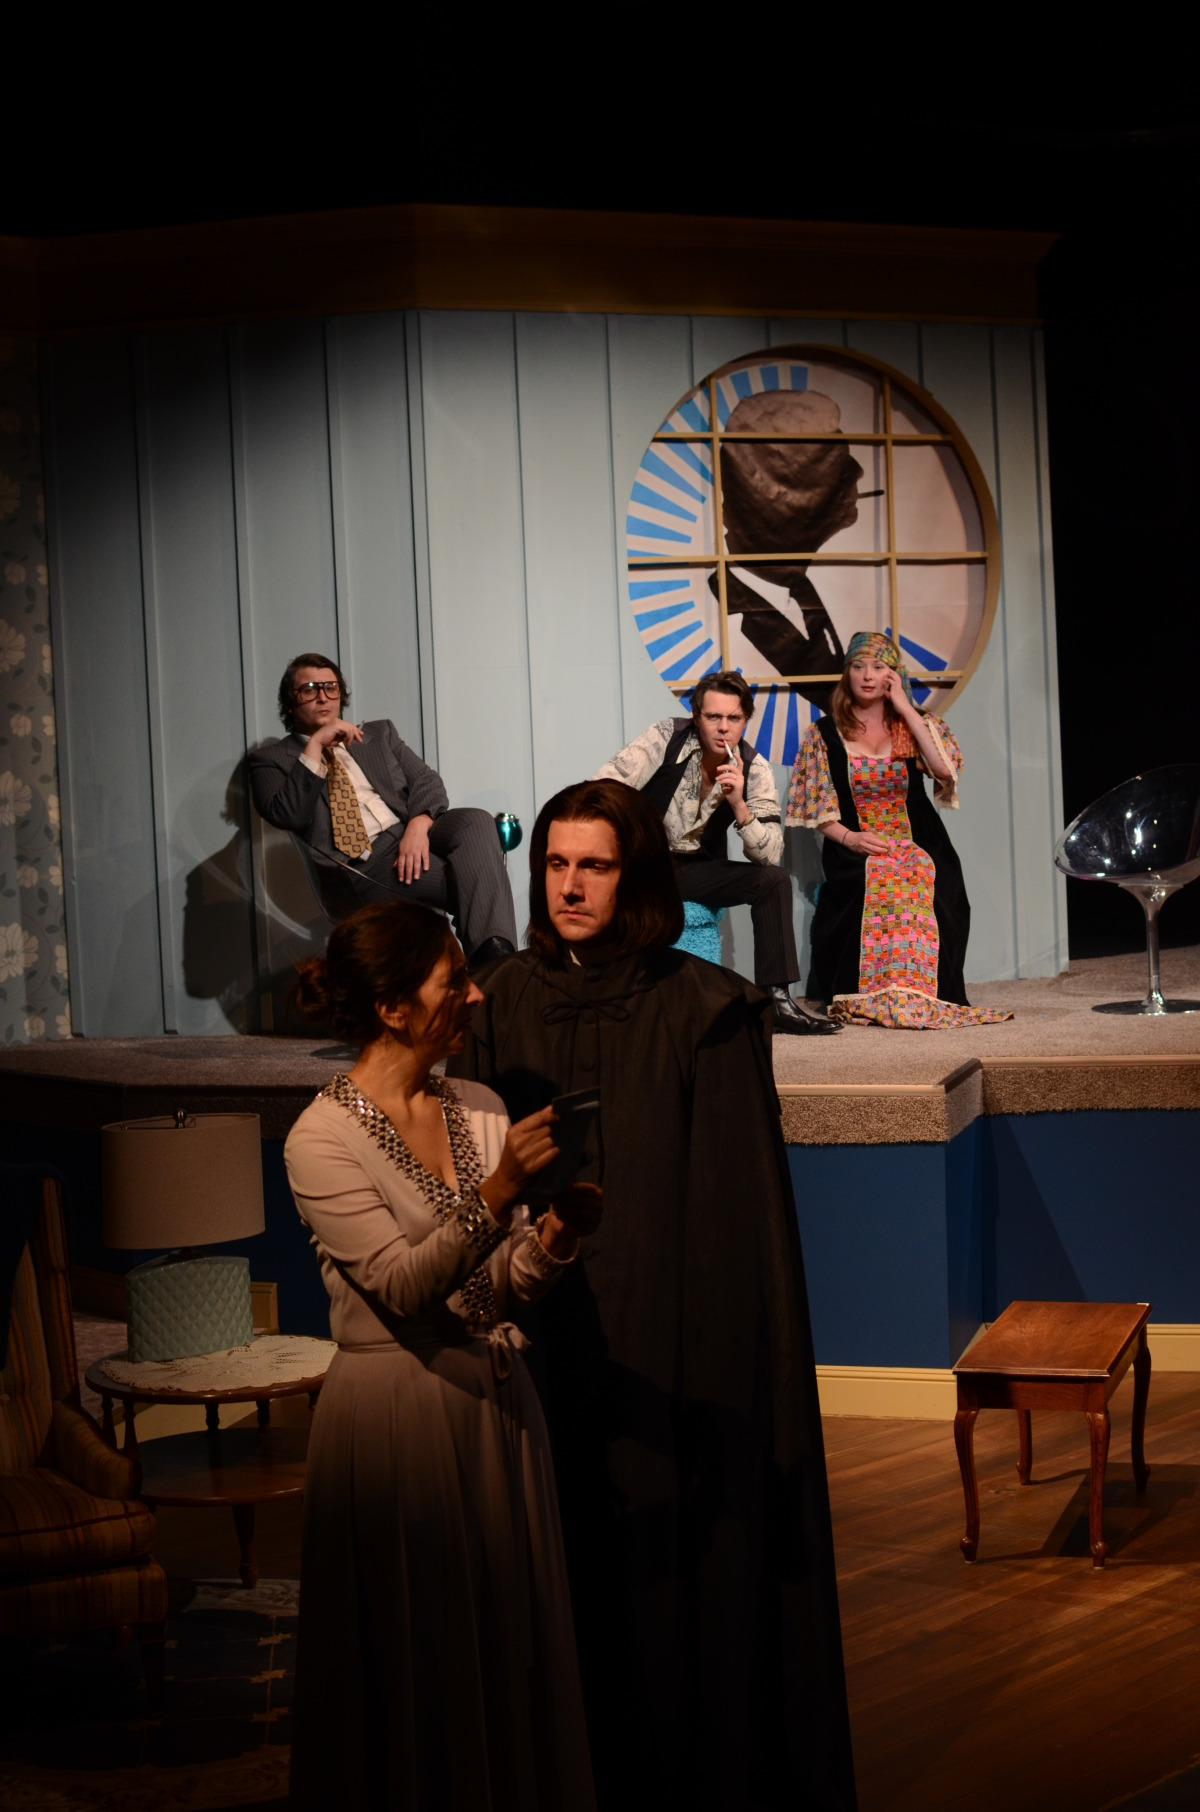 John T. Smith, Amy Herzberg, Steven Marzolf, Kristopher P. Stoker, and Kathy Logelin in The Spiritualist (2013). Bettencourt Chase Photography.